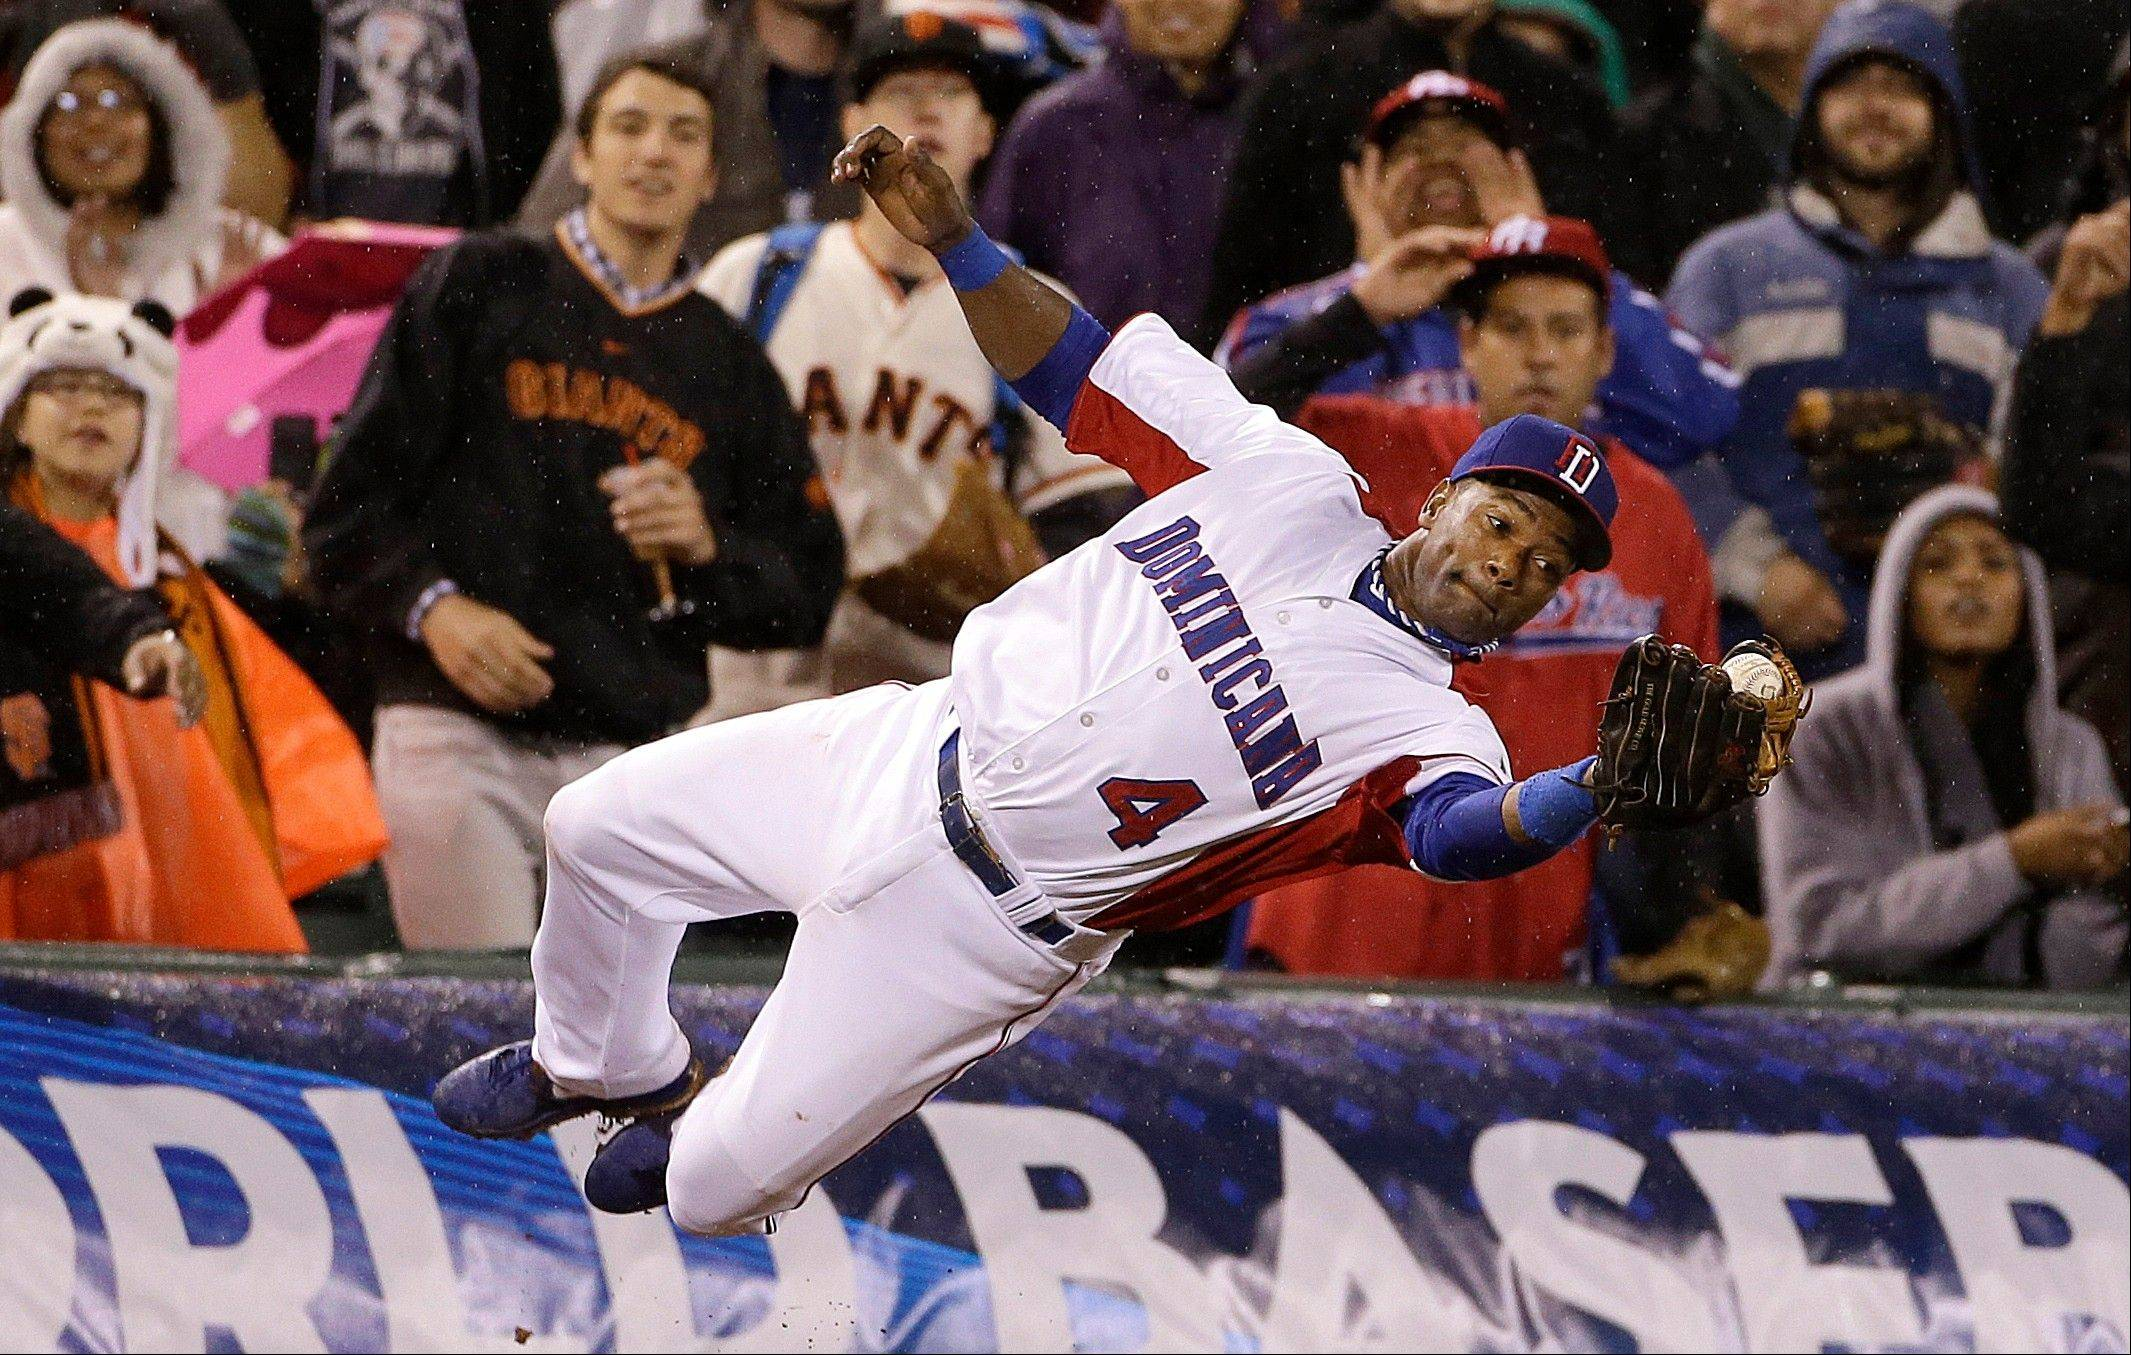 The Dominican Republic's Miguel Tejada (4) catches a foul ball hit by Puerto Rico's Jesus Feliciano during the seventh inning of the championship game of the World Baseball Classic in San Francisco, Tuesday, March 19, 2013. (AP Photo/Eric Risberg)